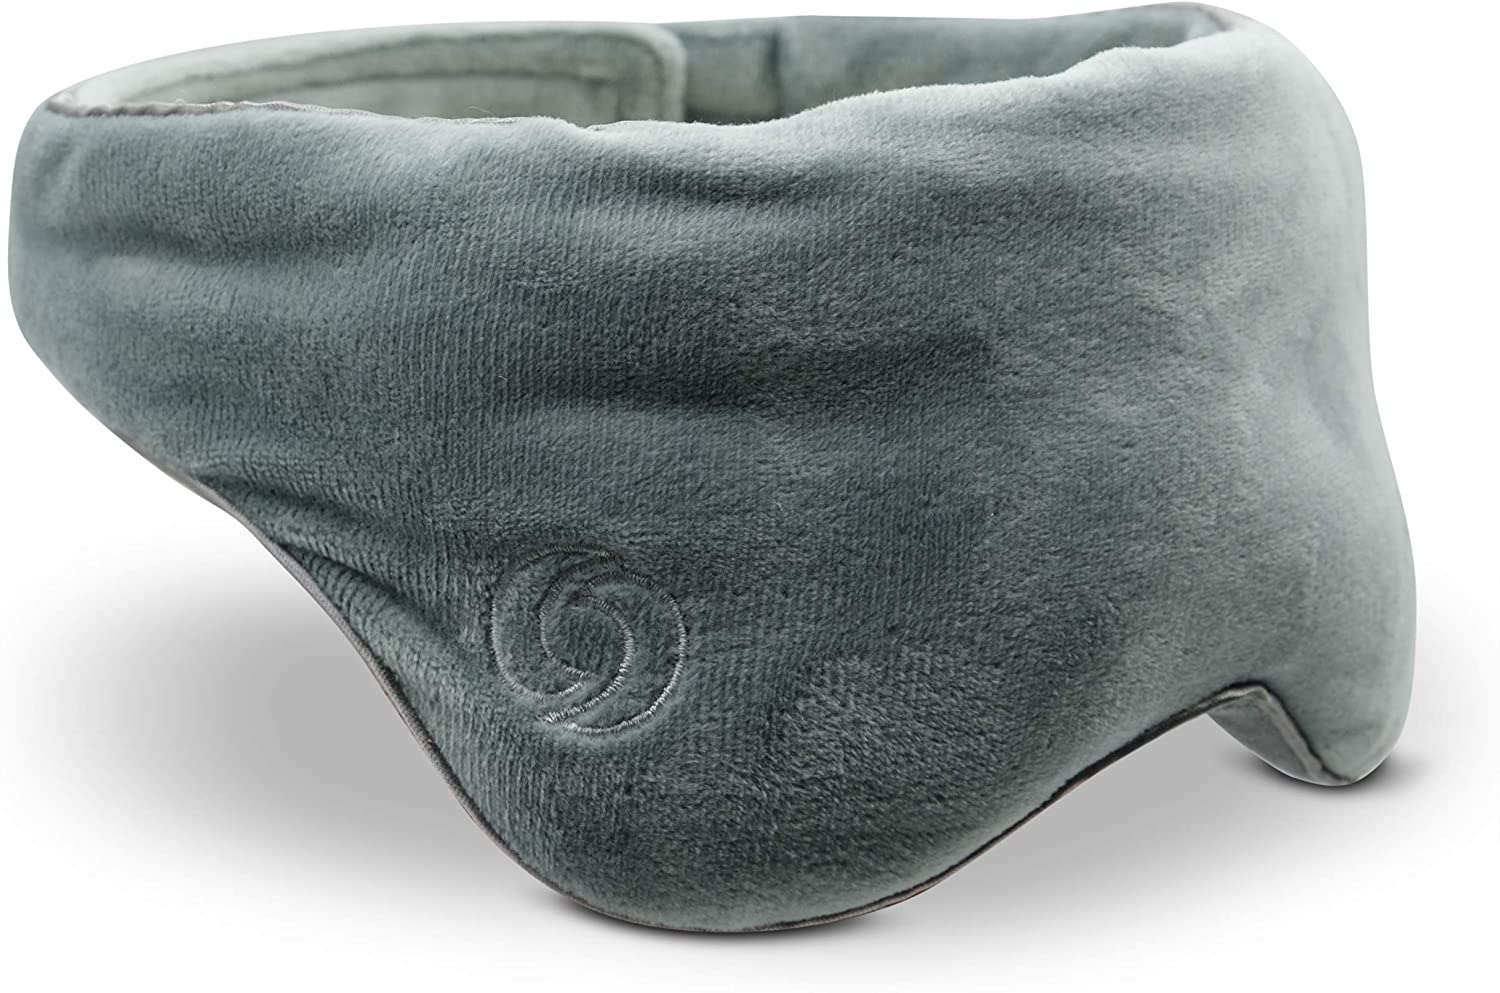 Orion Weighted Eye Mask for Sleeping, Relaxation, Stress Reducer Total Darkness